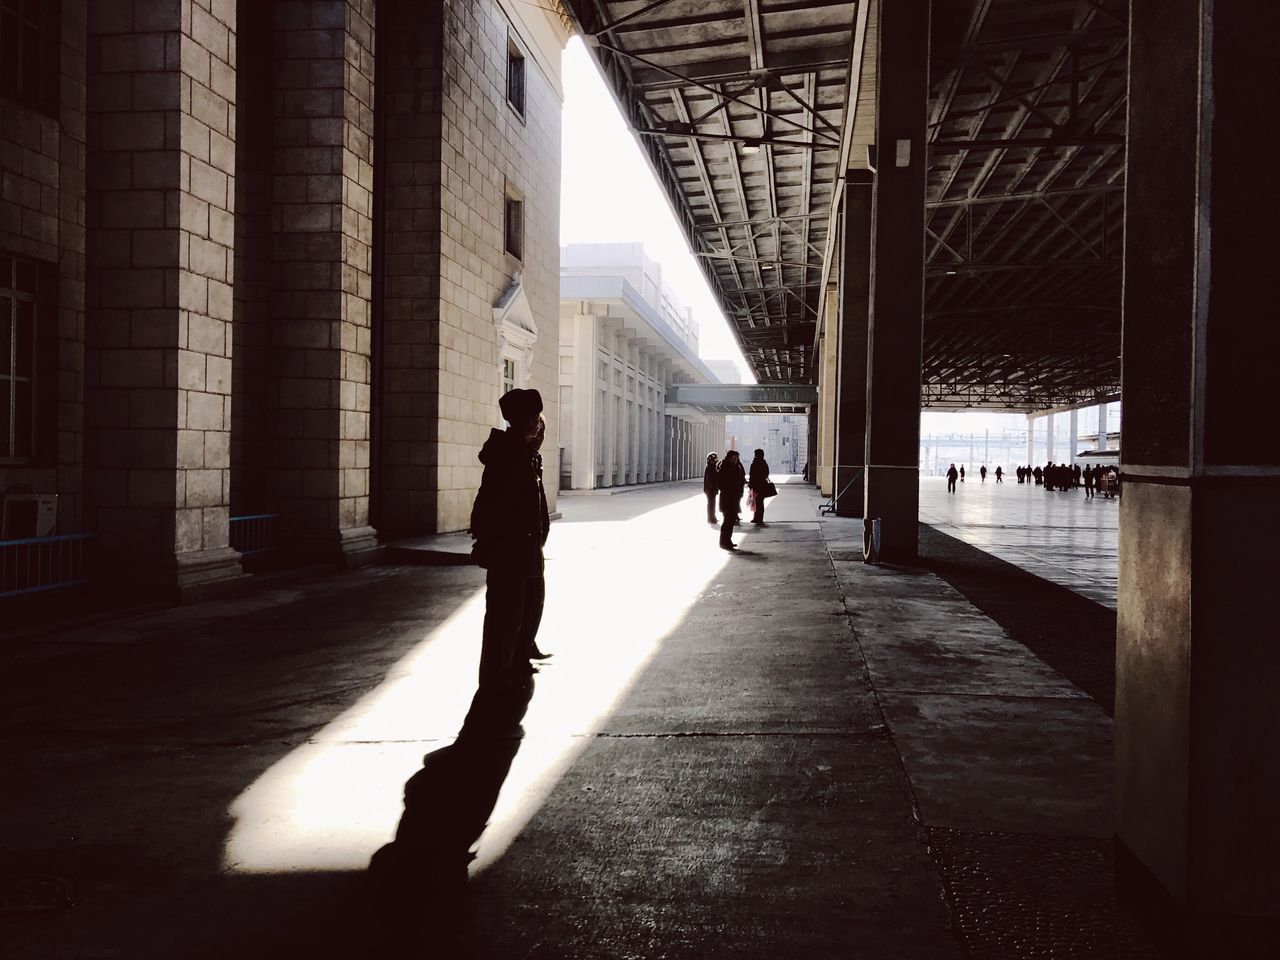 Silhouette of people at train station